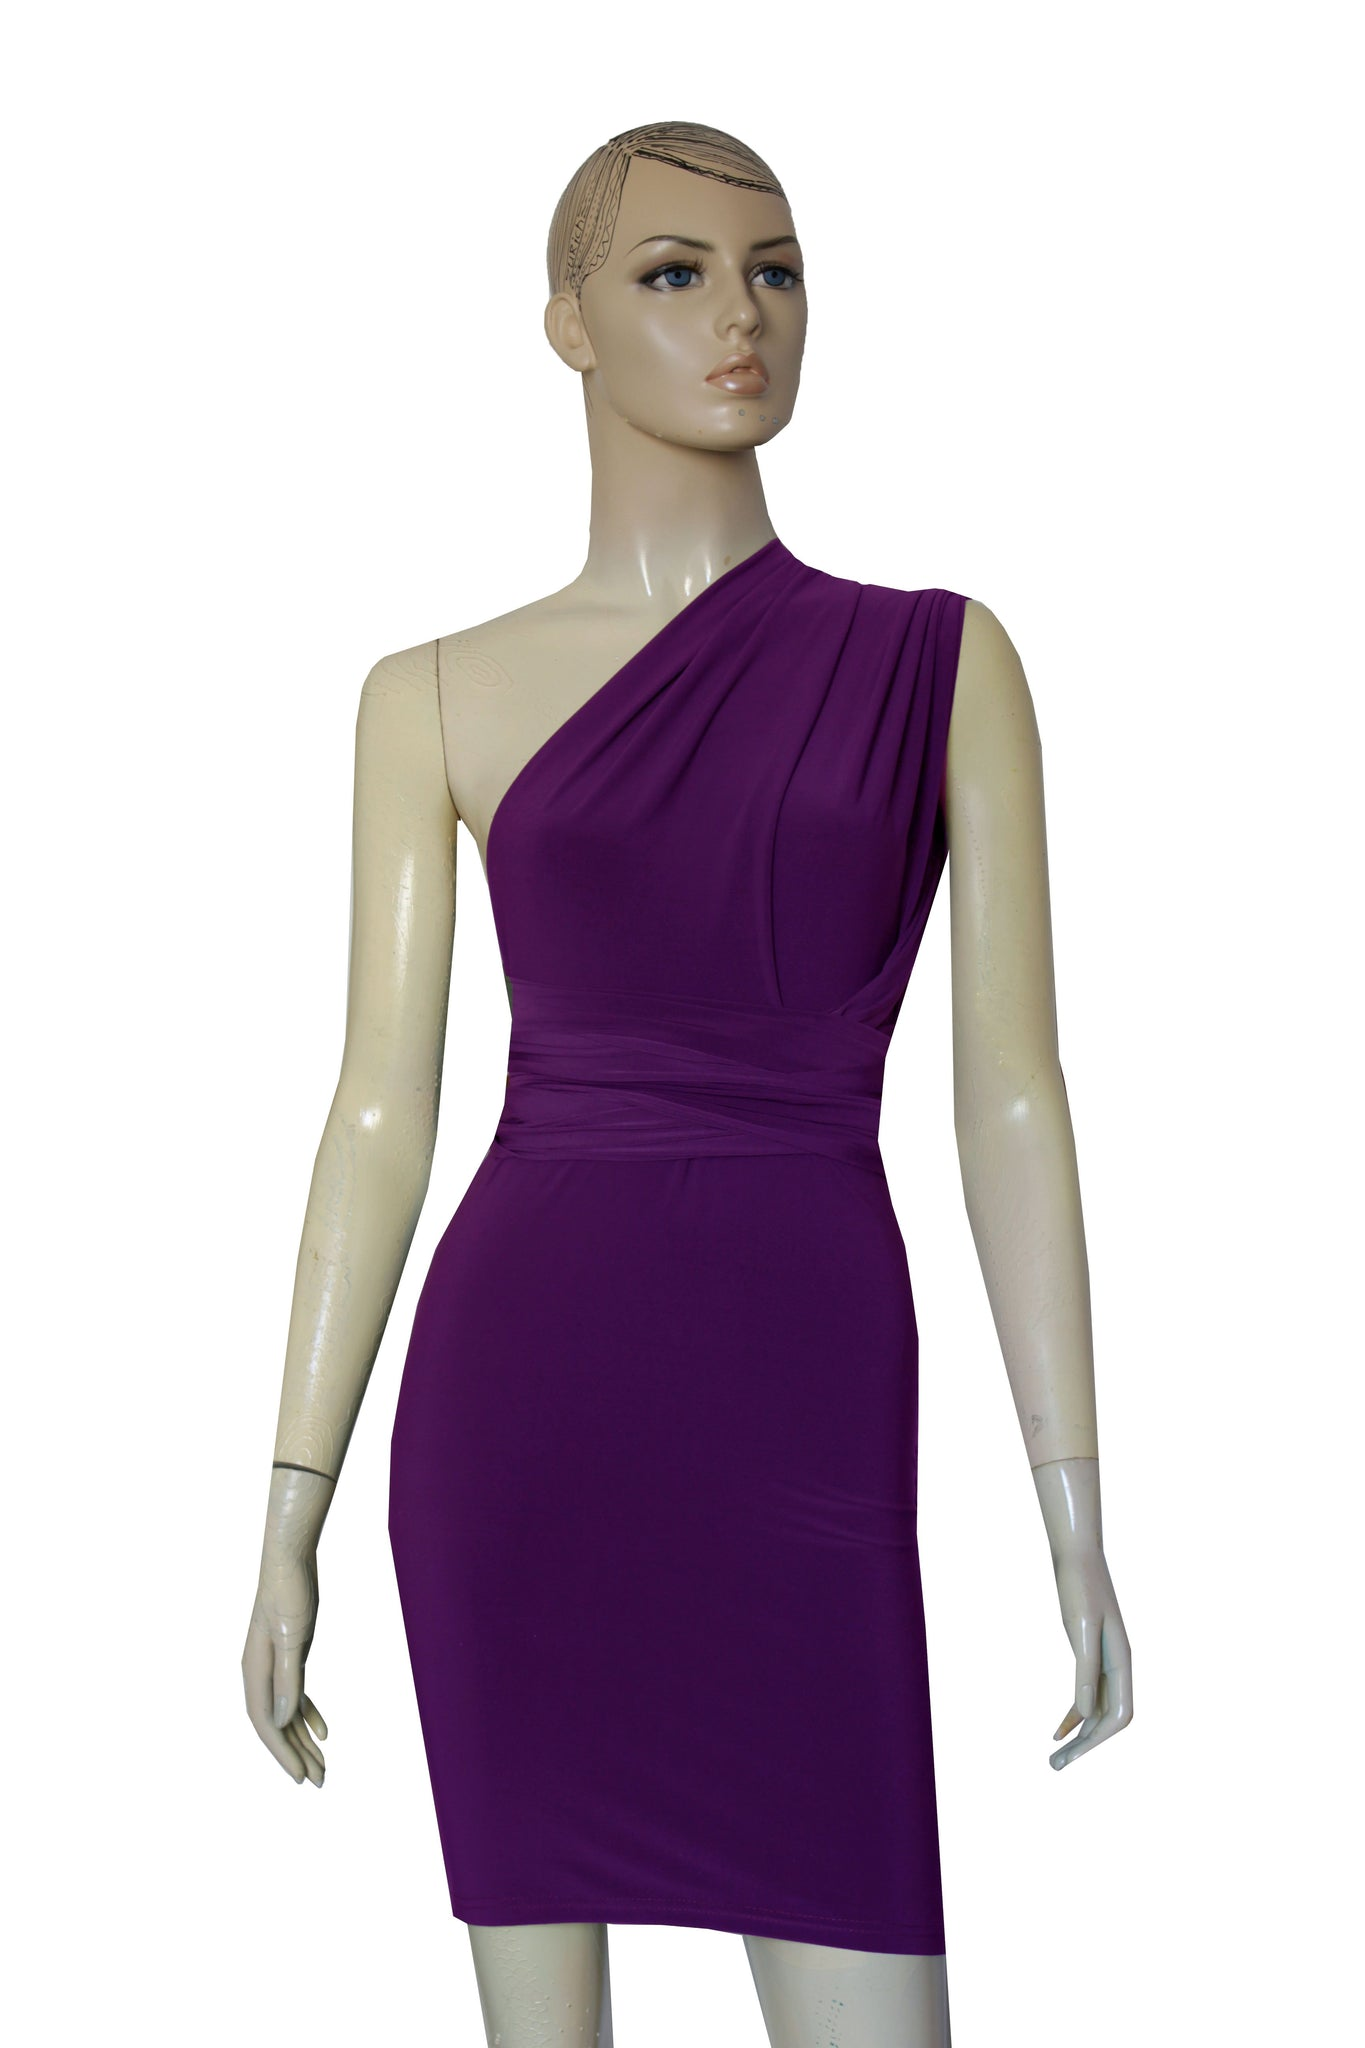 Plum Bridesmaids Dress Pencil Multi Way Dress Bridesmaids Convertible Gown Sexy Plus Size Outfit